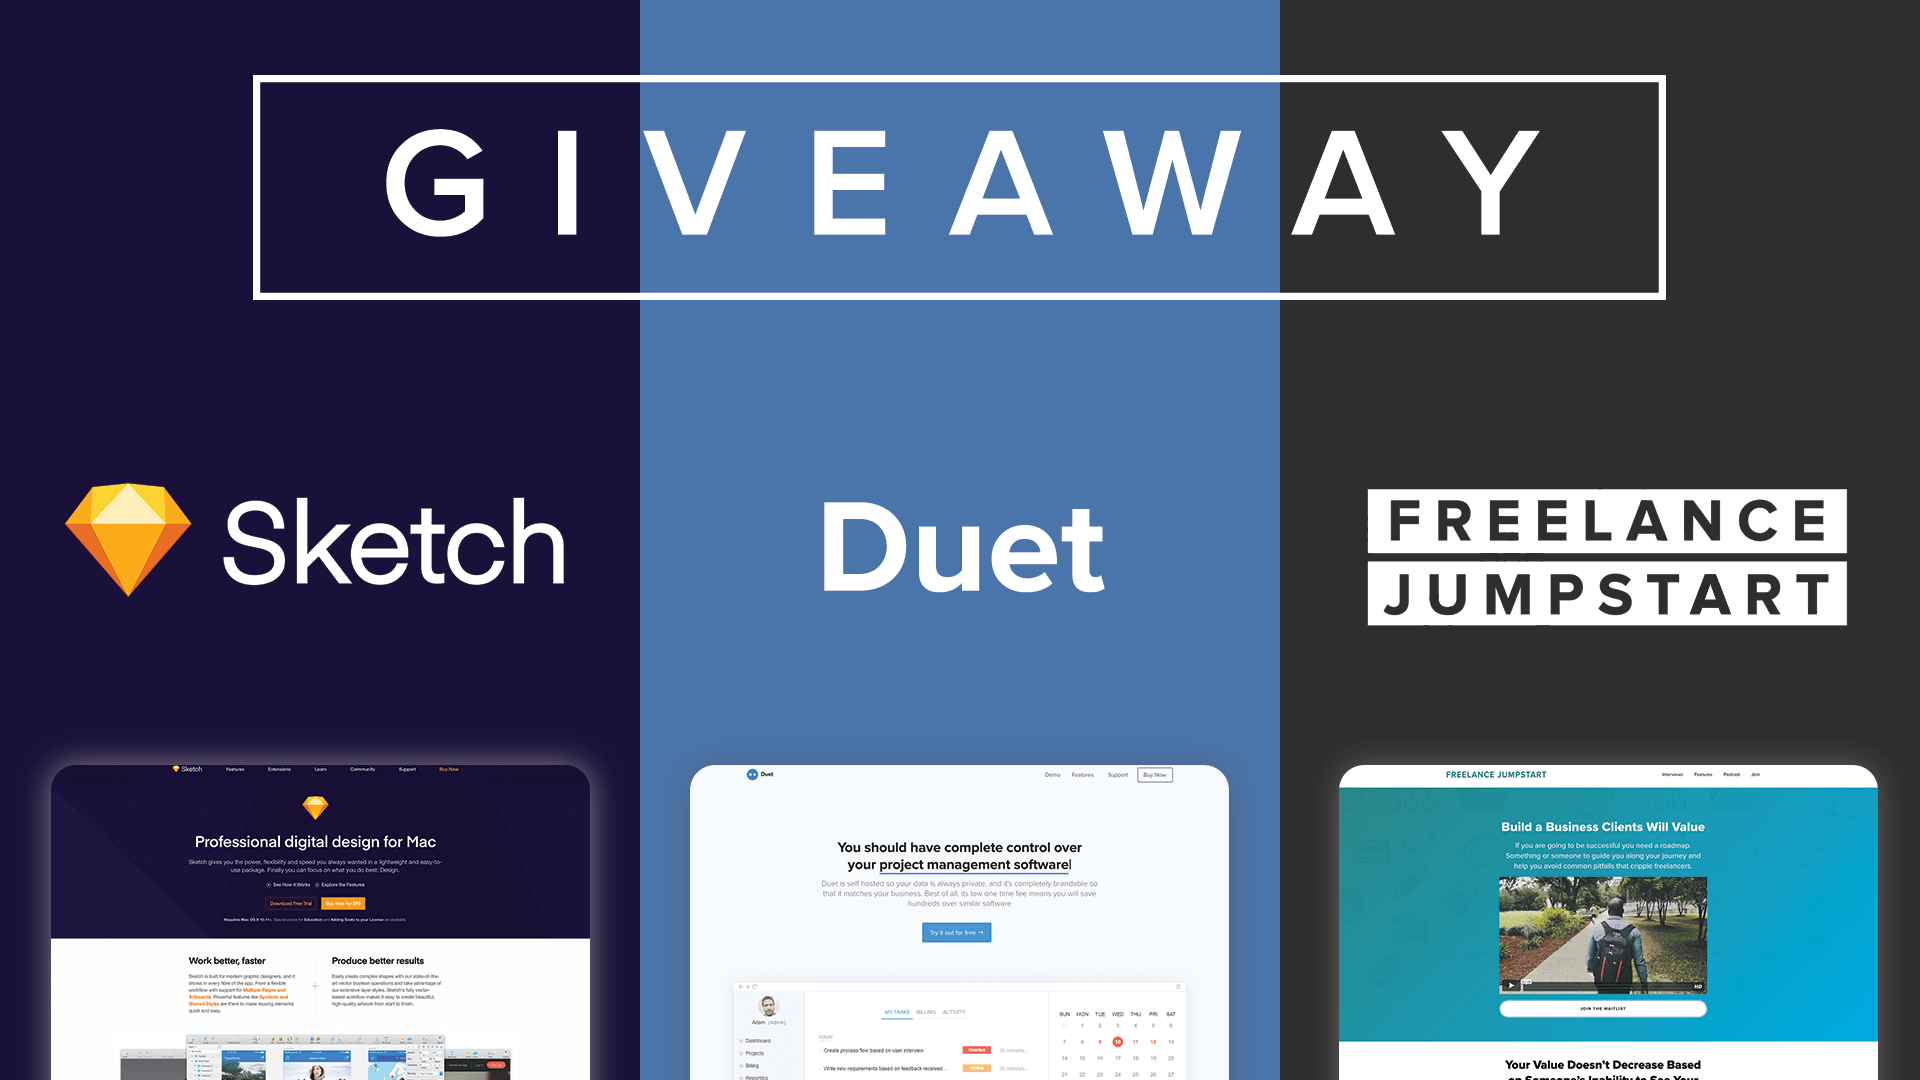 Freelance Jumpstart Giveaway